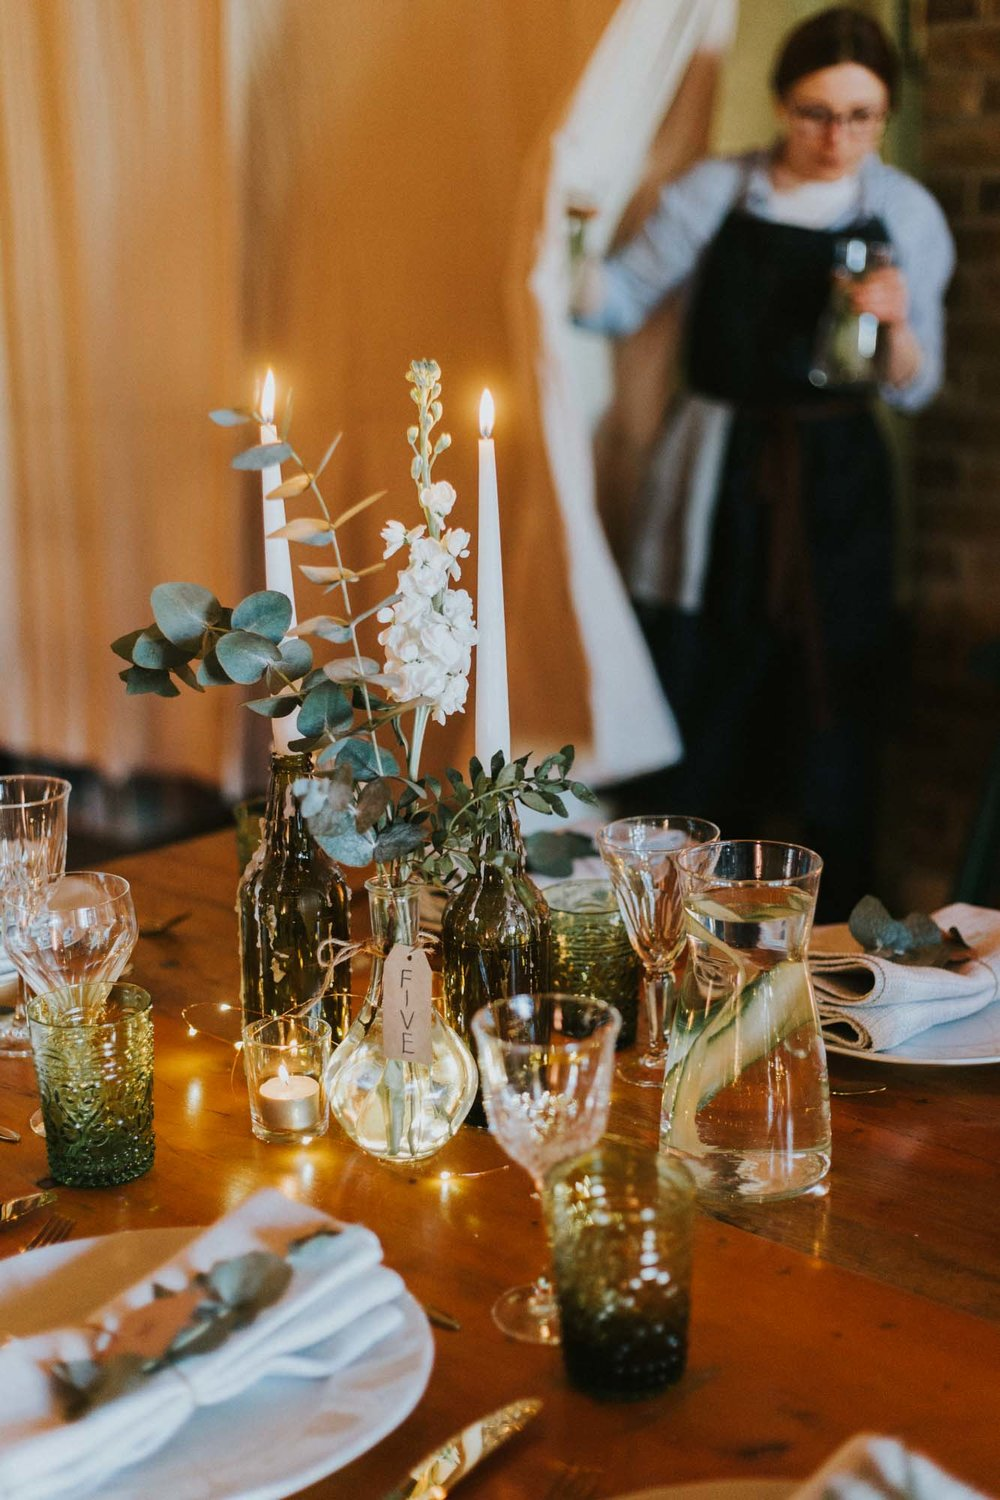 Quirky Venue, Non-traditional wedding planner, London Wedding coordination, Event Bar, Bespoke weddings, Brixton Wedding, Foodie wedding, informal, Stylish, Event Planning, London weddings